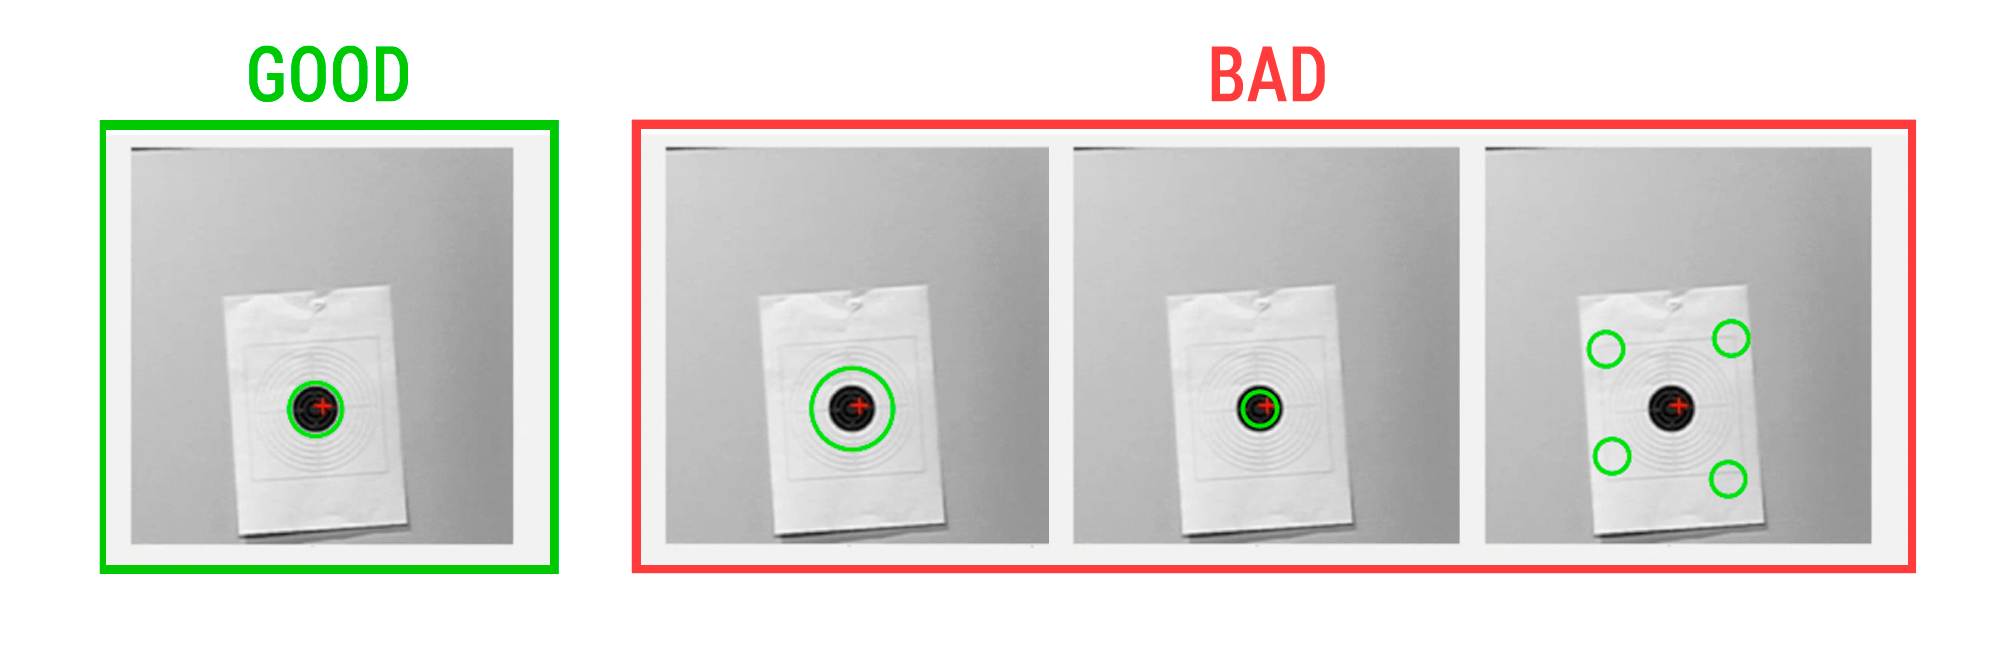 Examples of Good and Bad target detection